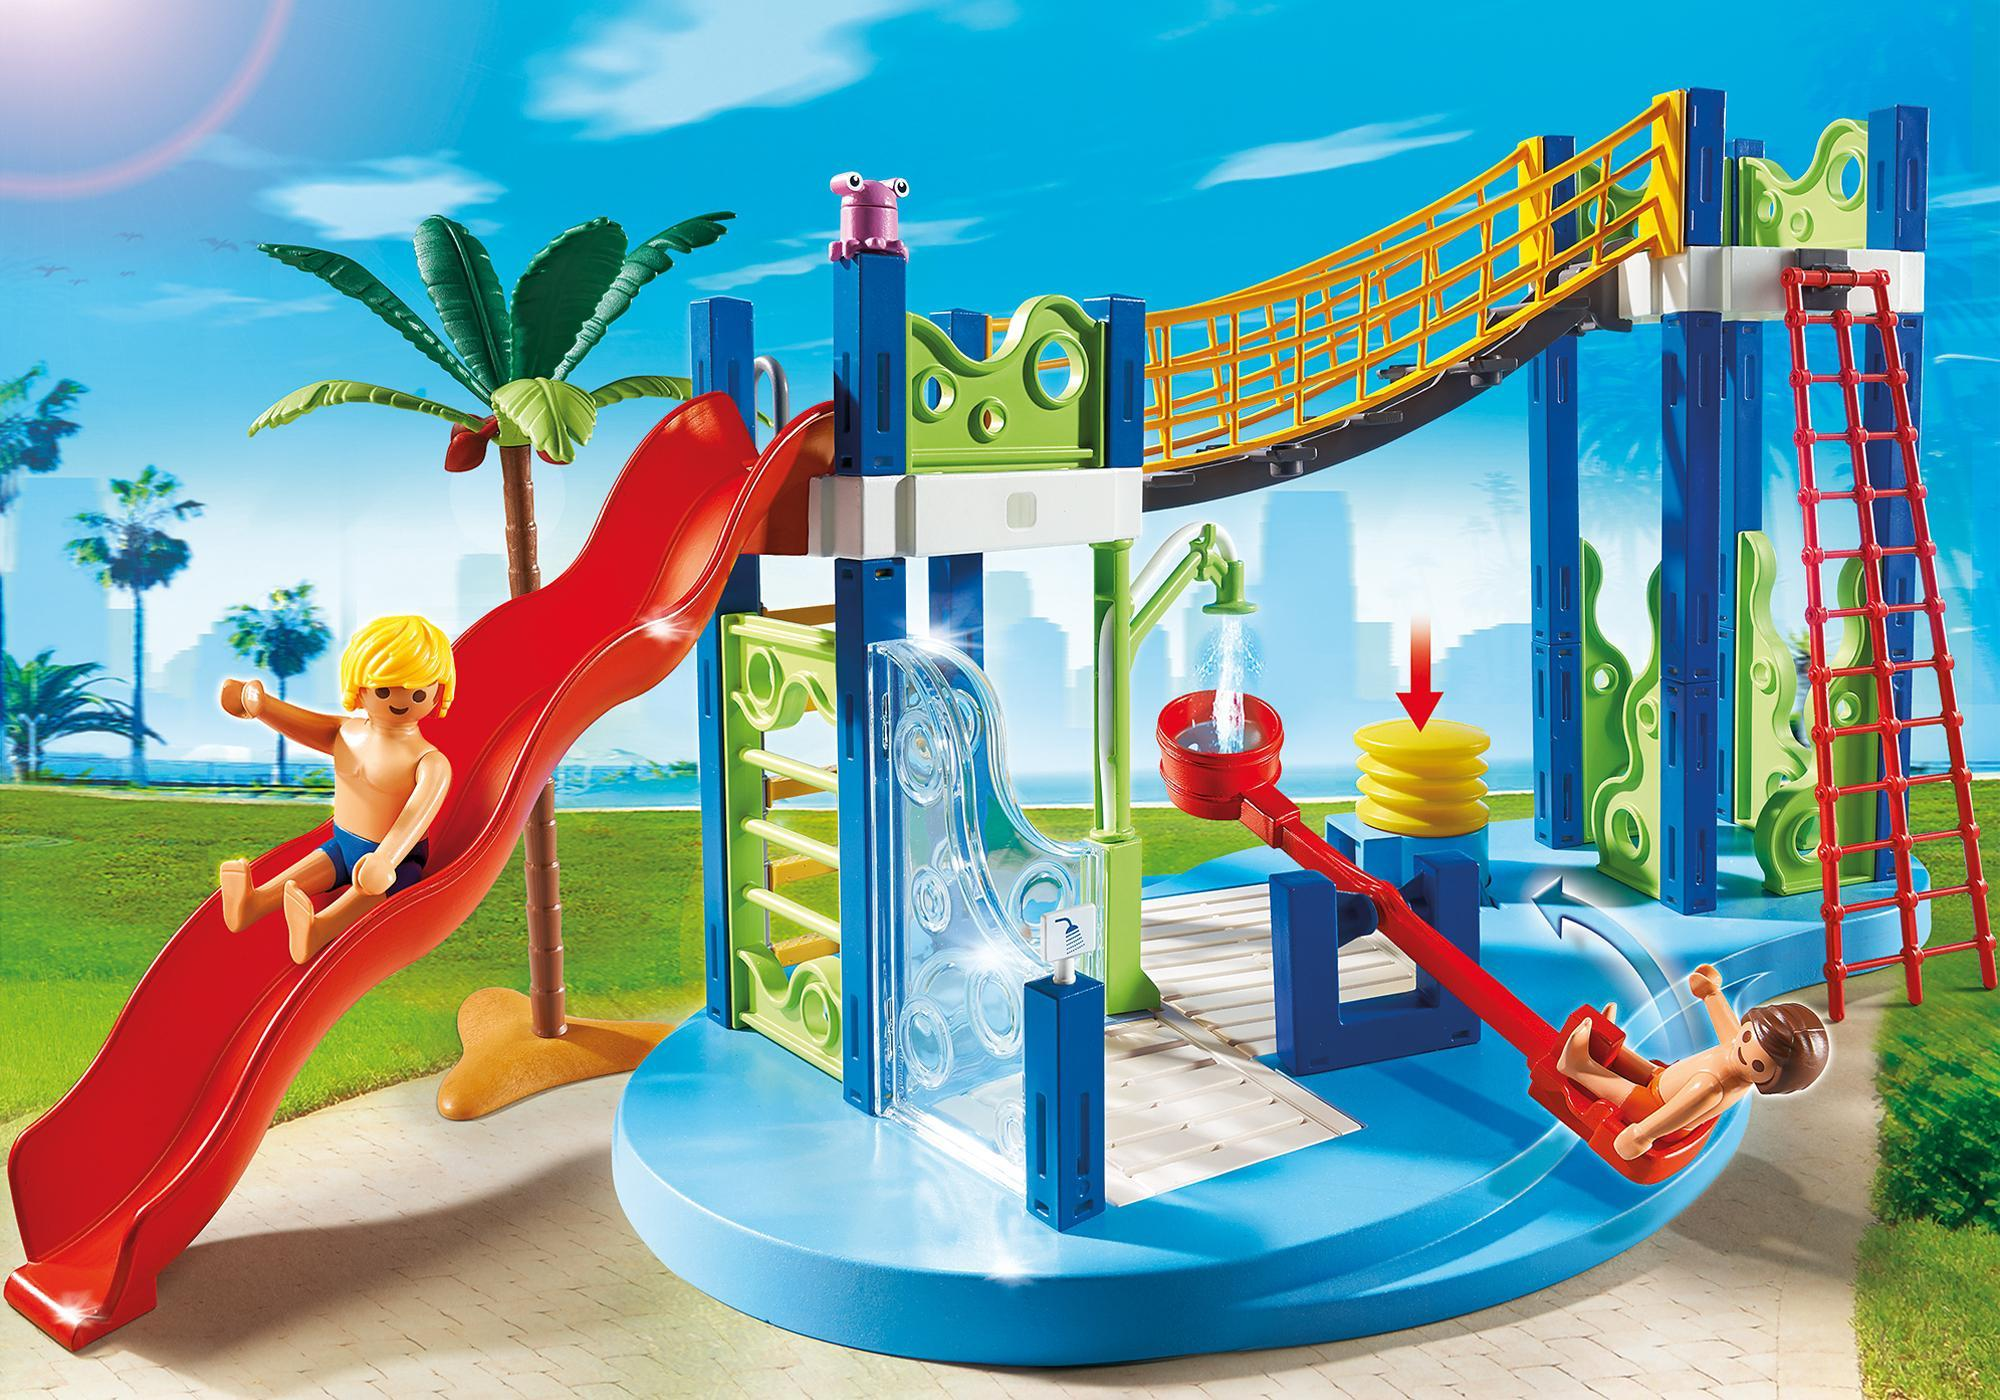 http://media.playmobil.com/i/playmobil/6670_product_detail/Aire de jeux aquatique